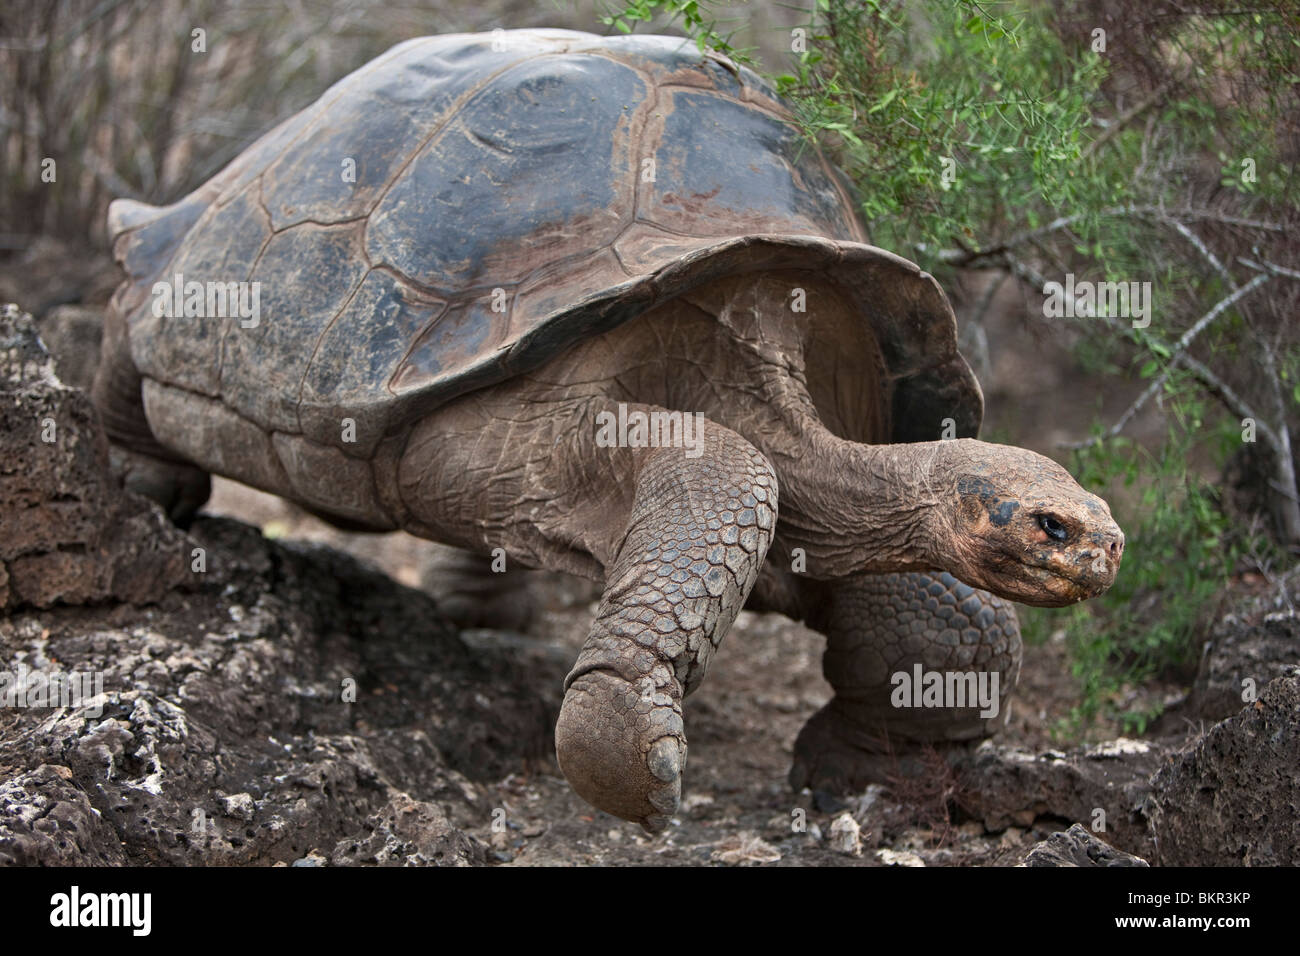 Galapagos Islands, A giant domed tortoise after which the Galapagos islands were named. - Stock Image